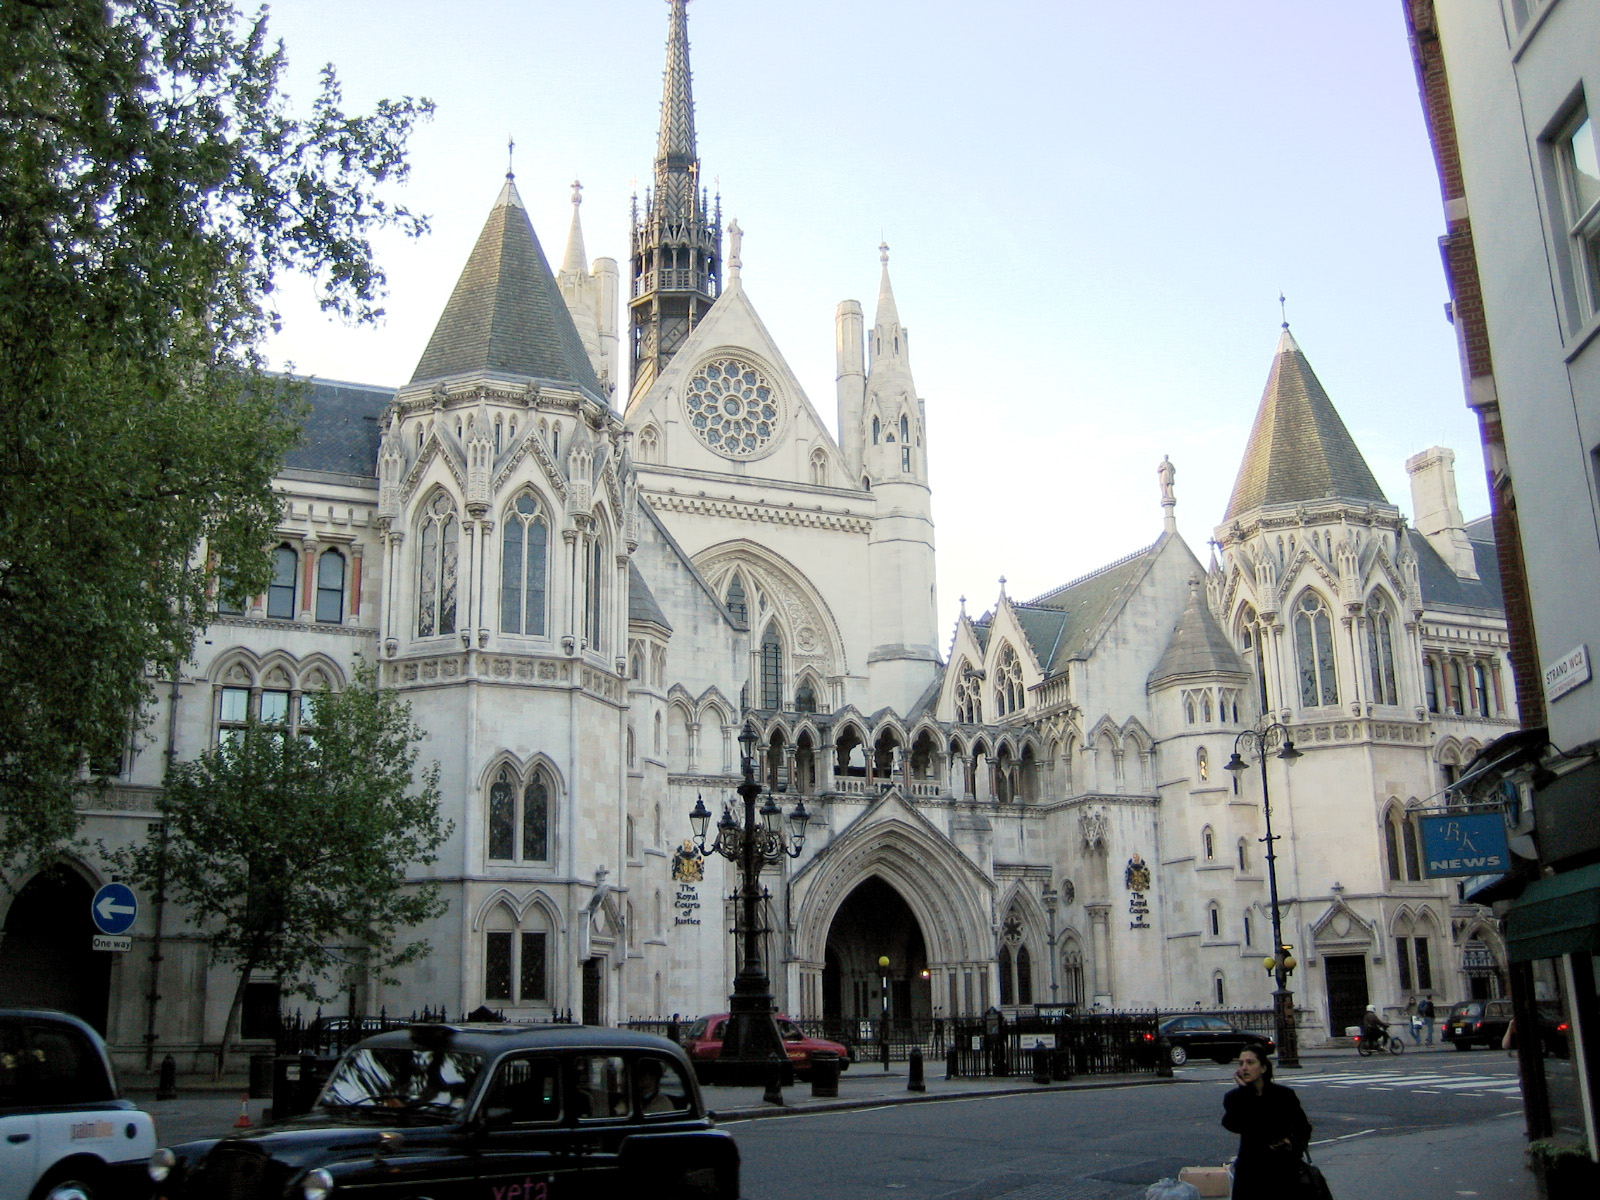 Royal_courts_of_justice. strand london